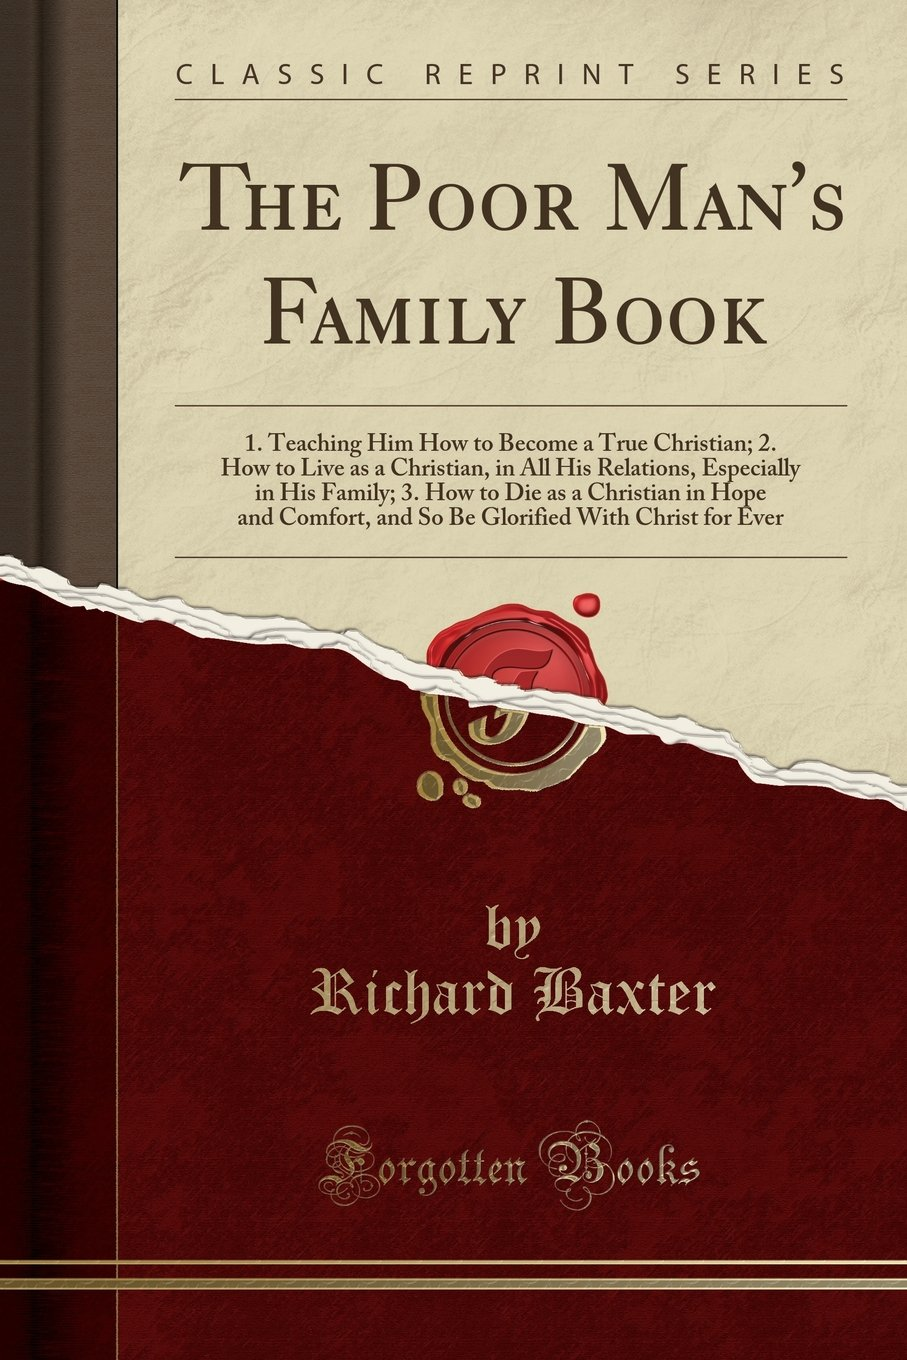 Read Online The Poor Man's Family Book: 1. Teaching Him How to Become a True Christian; 2. How to Live as a Christian, in All His Relations, Especially in His and So Be Glorified With Christ for Ever ebook